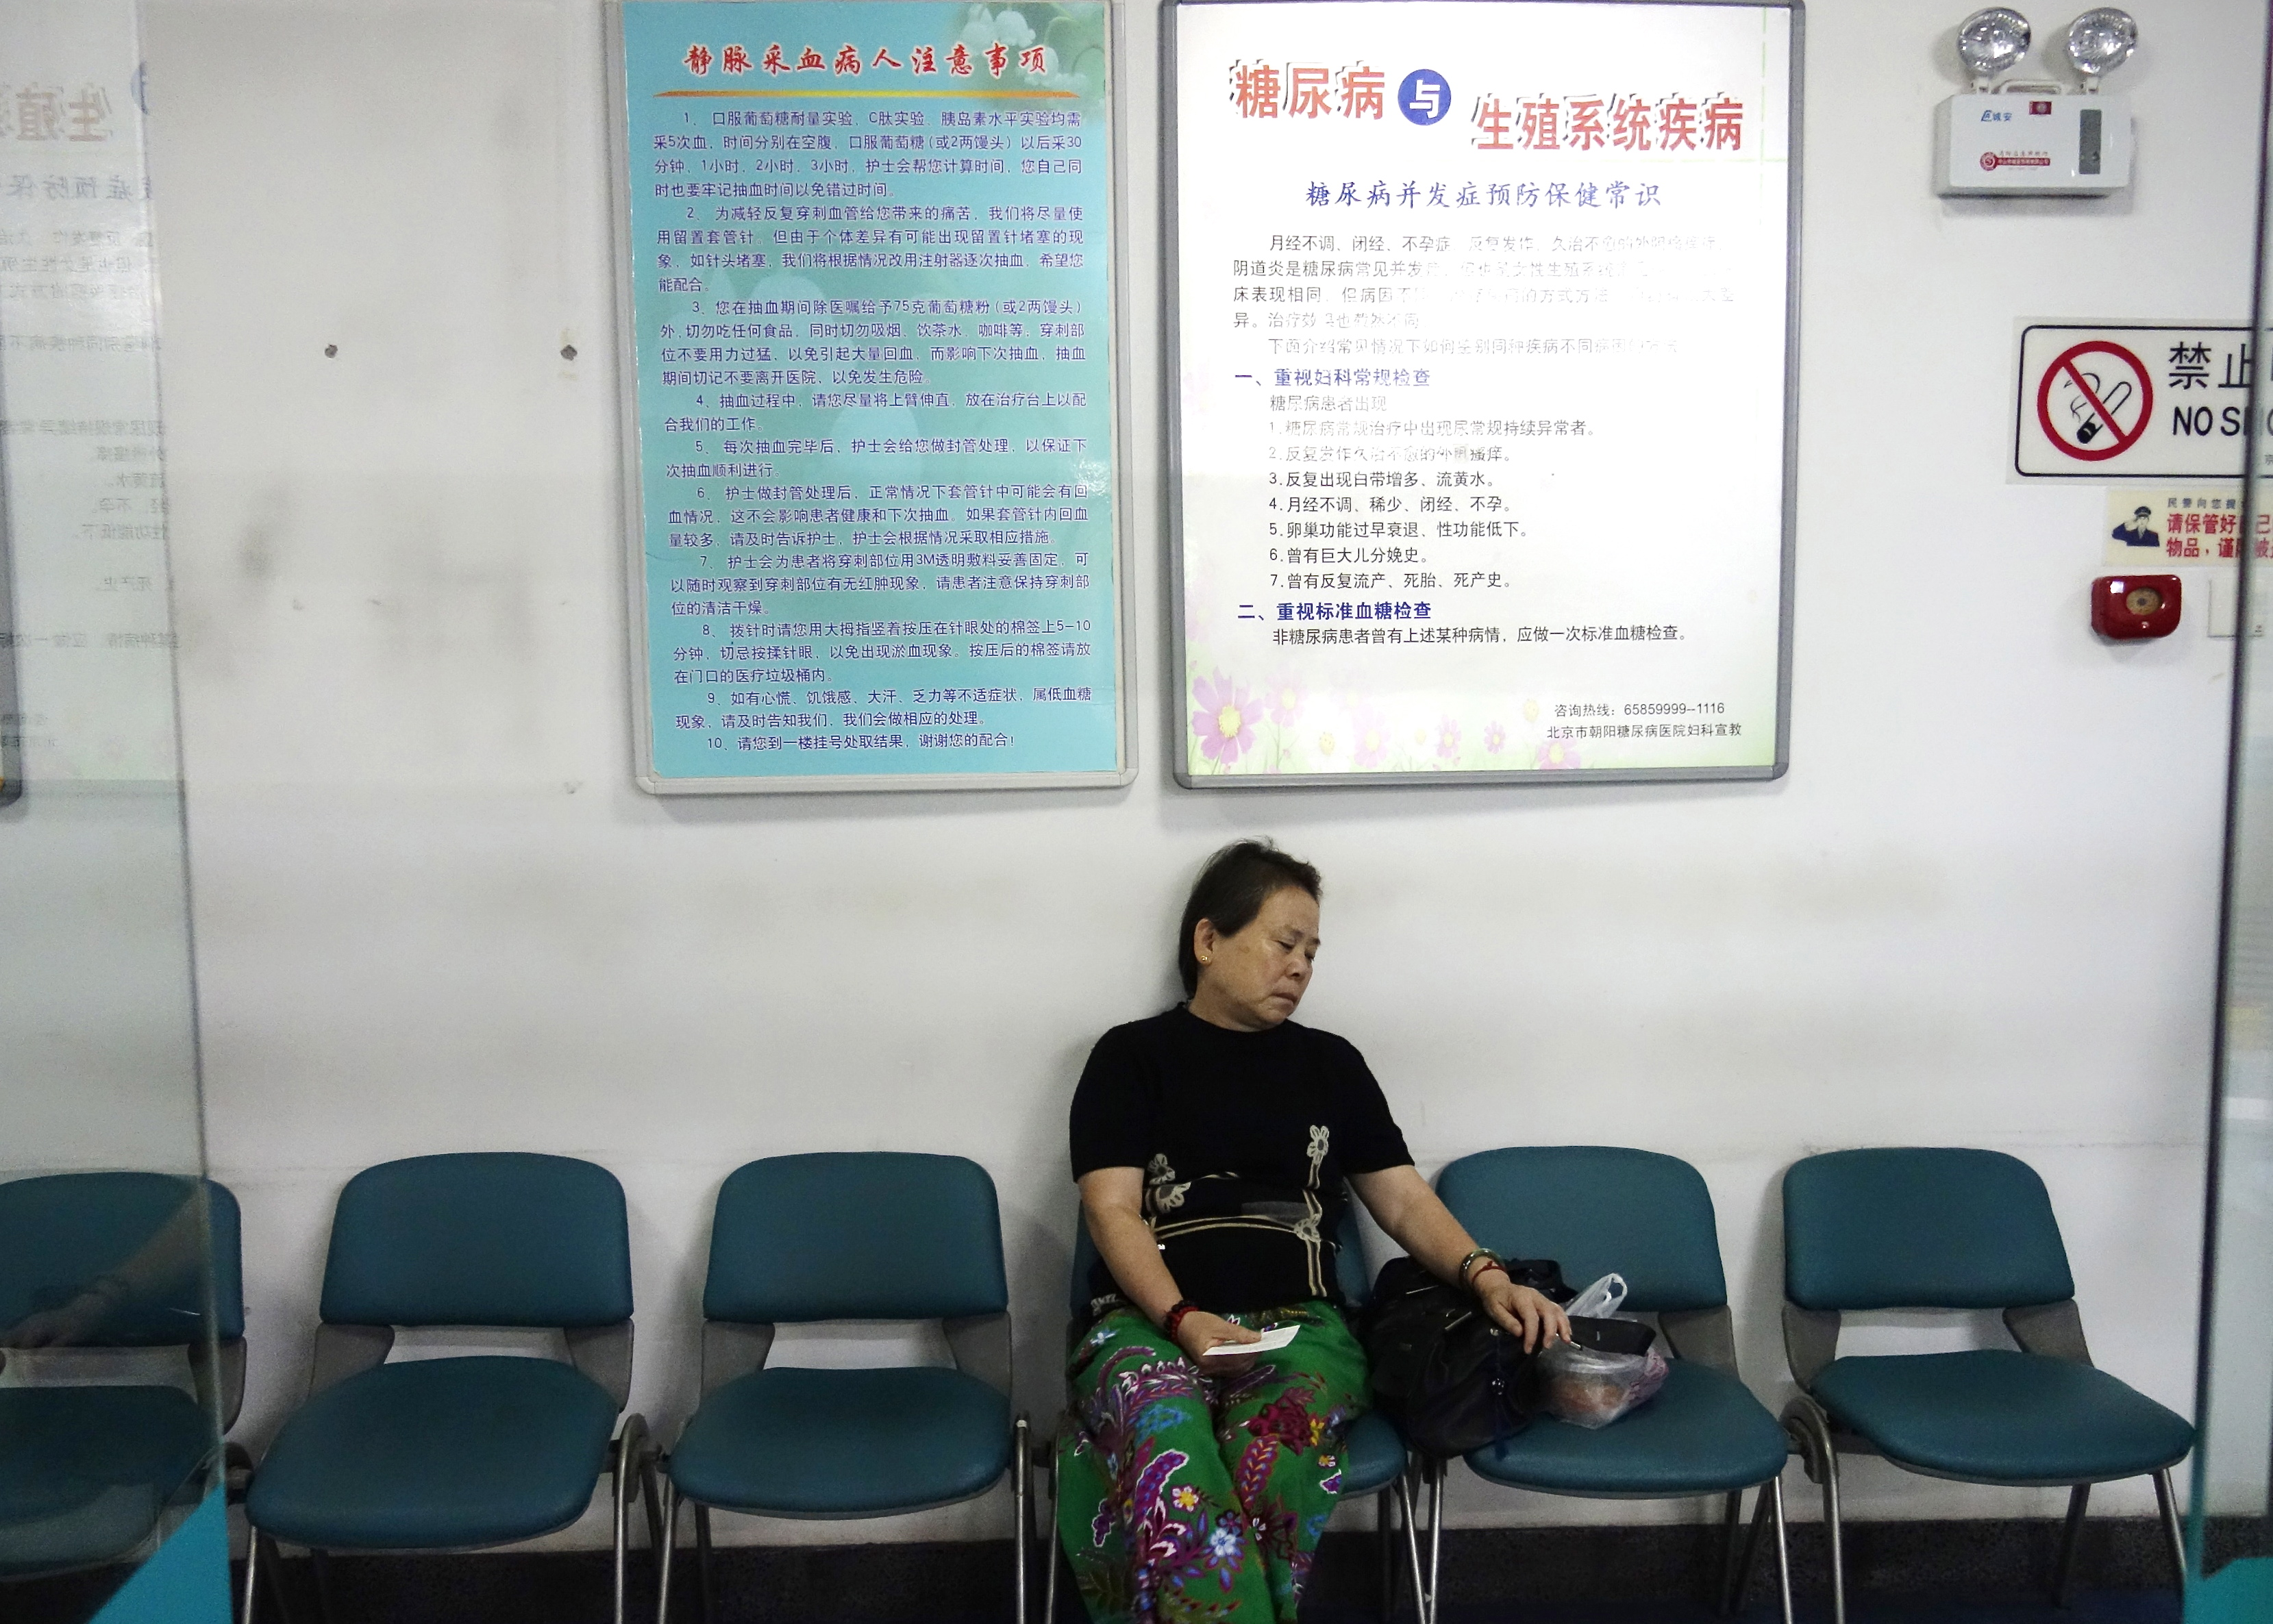 Chinese Women Should Be Wary of C-Section